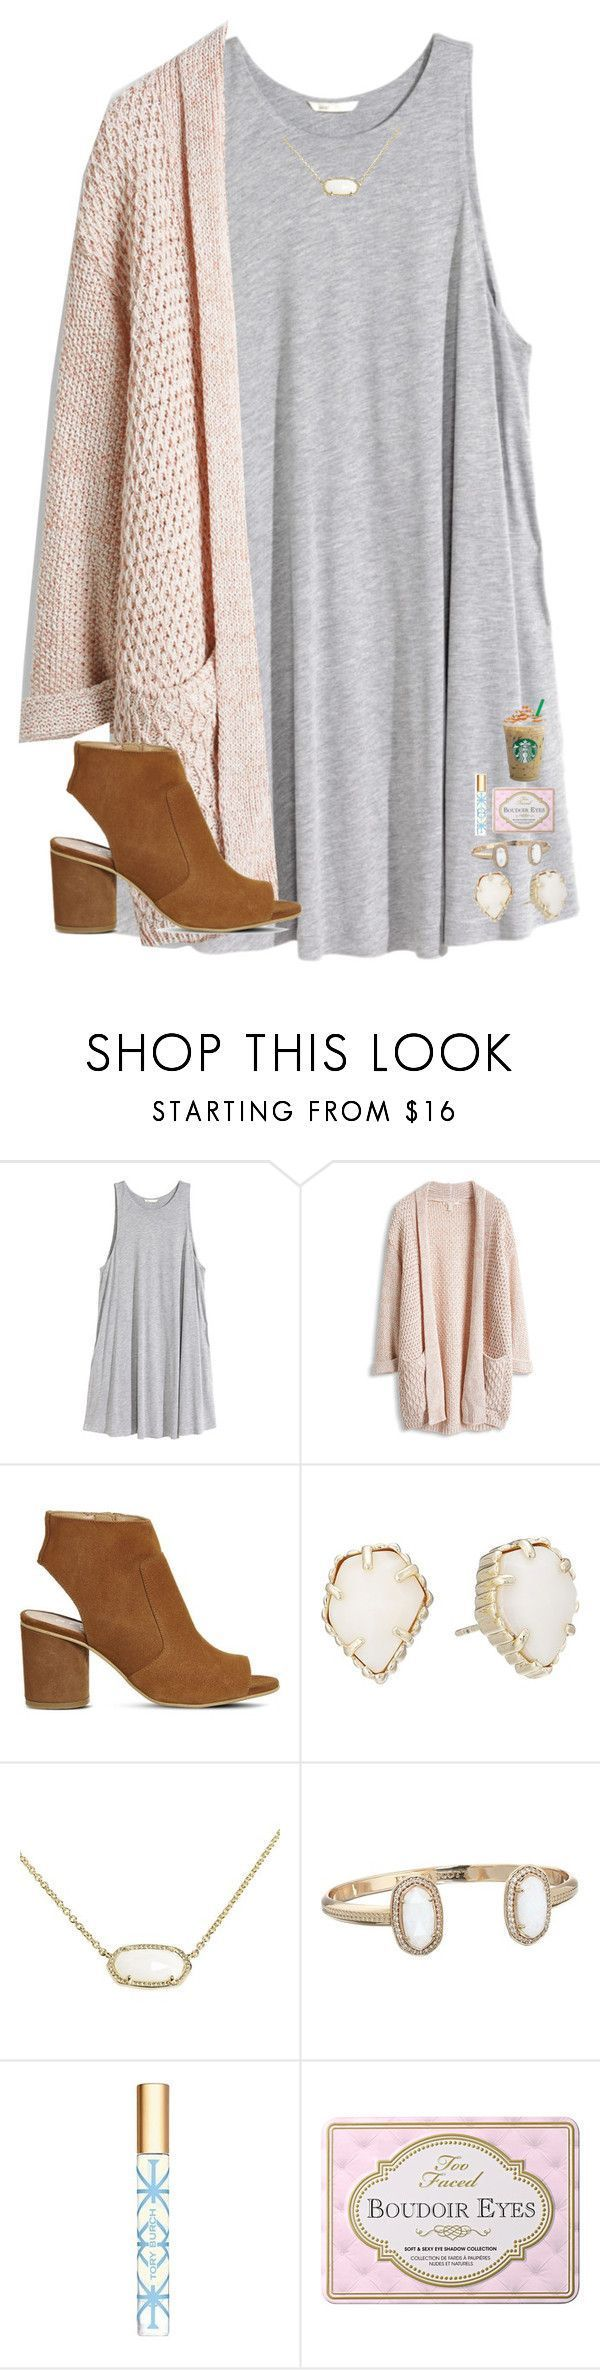 """""""Winter Break Friday and Monday ❄️❄️❄️❄️❄️"""" by mae343 ❤️ liked on Polyvore featuring H&M, Office, Kendra Scott and Tory Burch"""